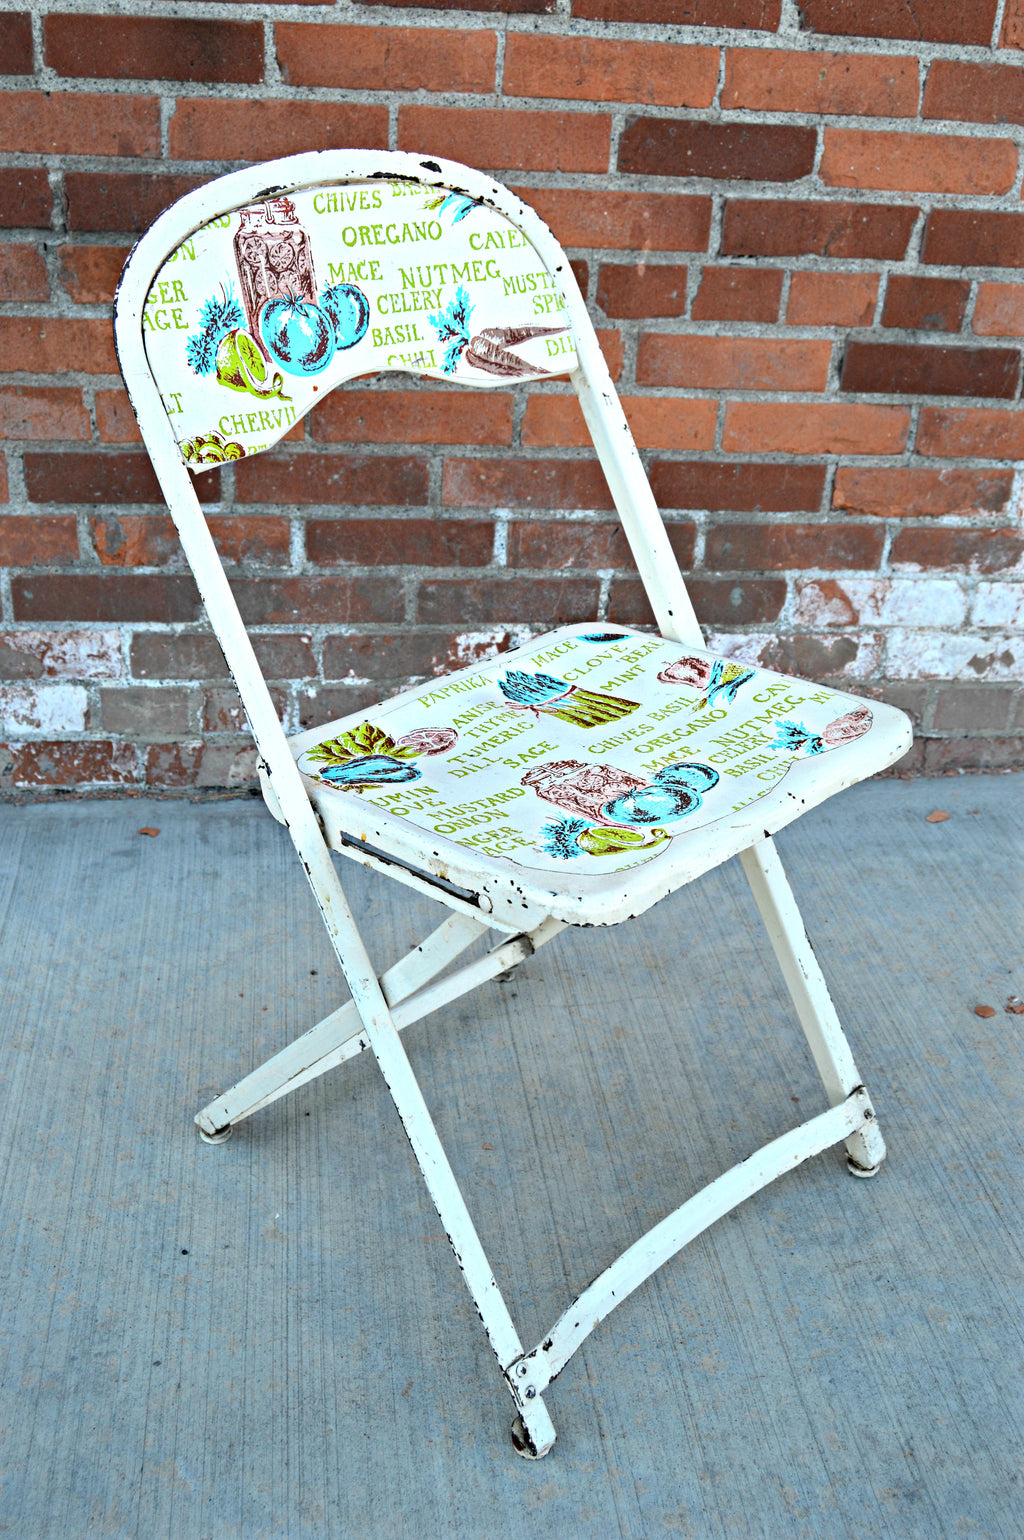 Antique metal chairs in white and cooking spice print